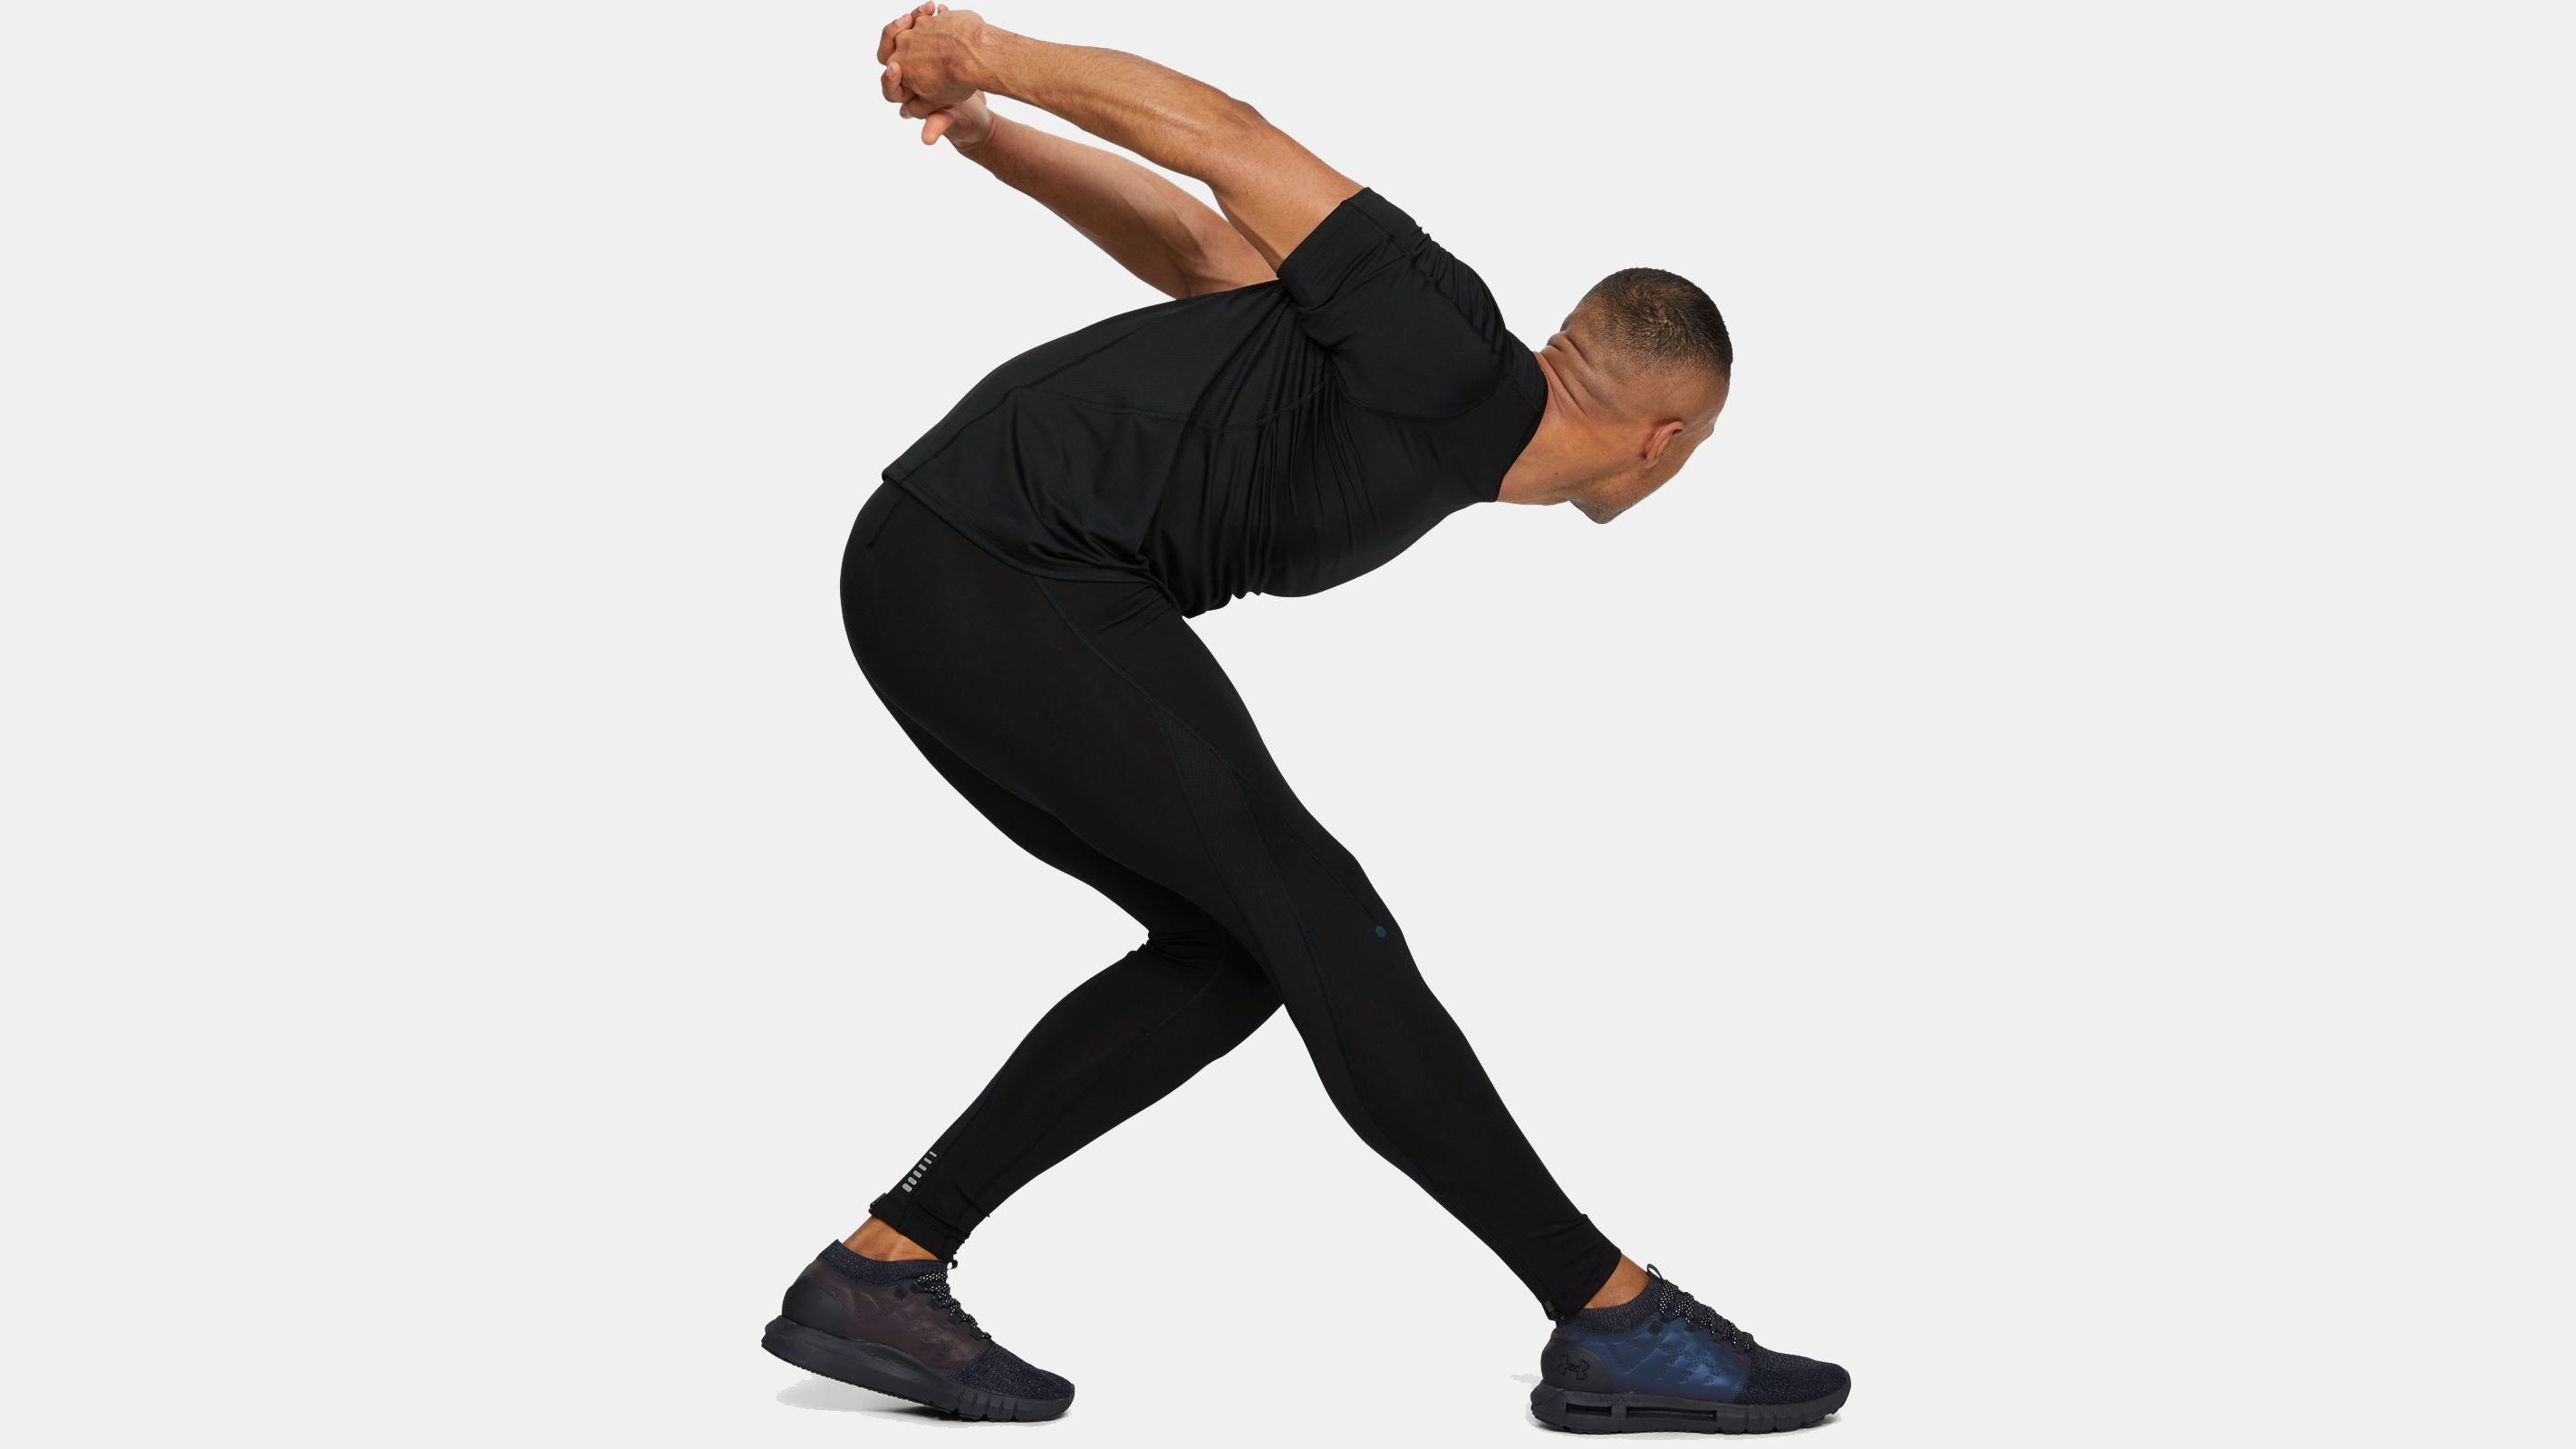 f2983dba48 Under Armour Revolutionizes Performance Apparel Once Again with UA ...